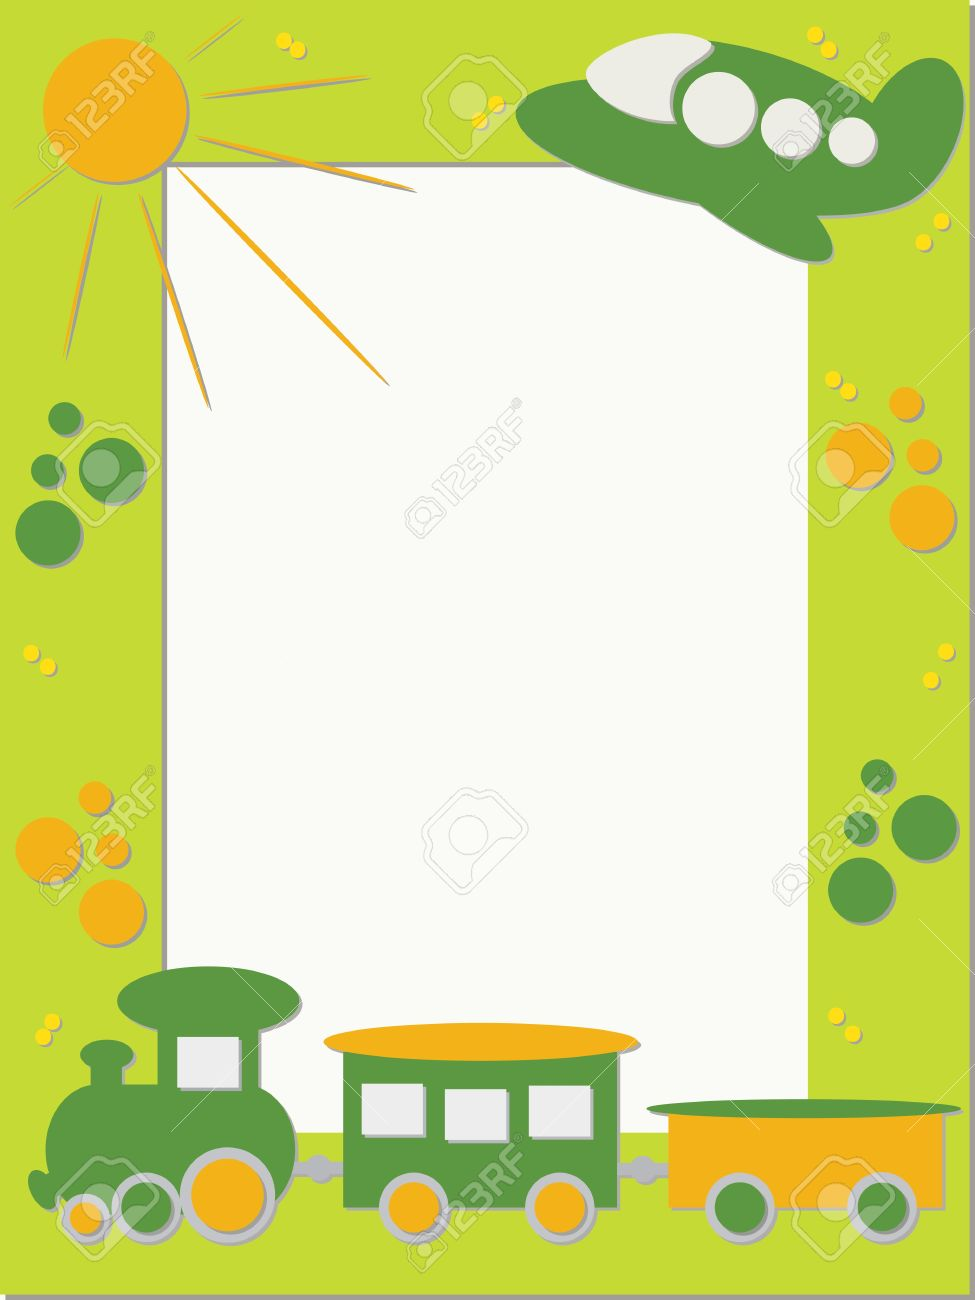 Children photo frame train and plane royalty free cliparts children photo frame train and plane stock vector 13739724 jeuxipadfo Gallery